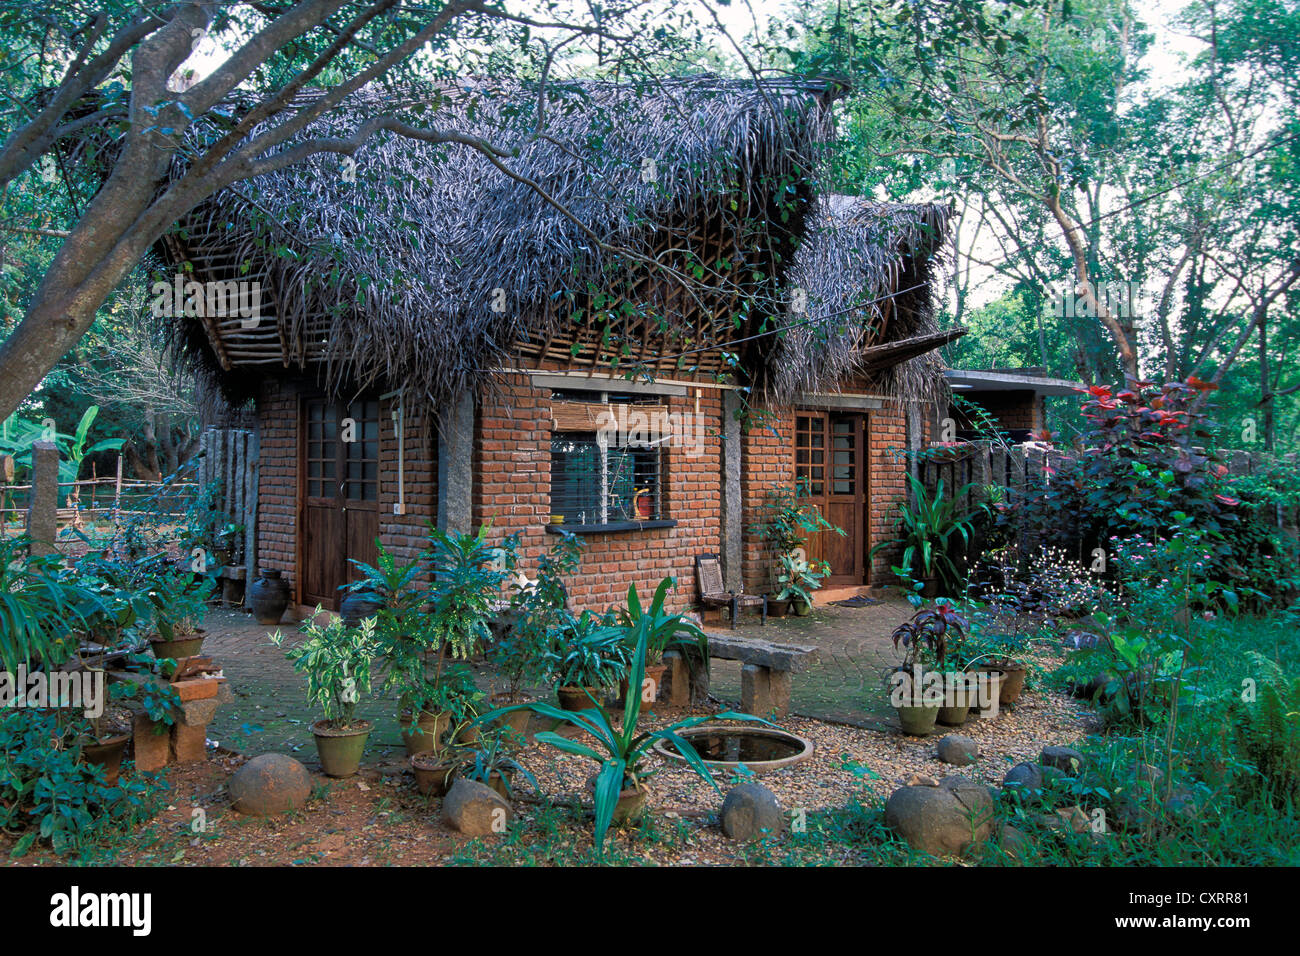 Alternative Architecture House And Garden Auroville Experimental Township Futuristic Near Pondicherry Or Puducherry